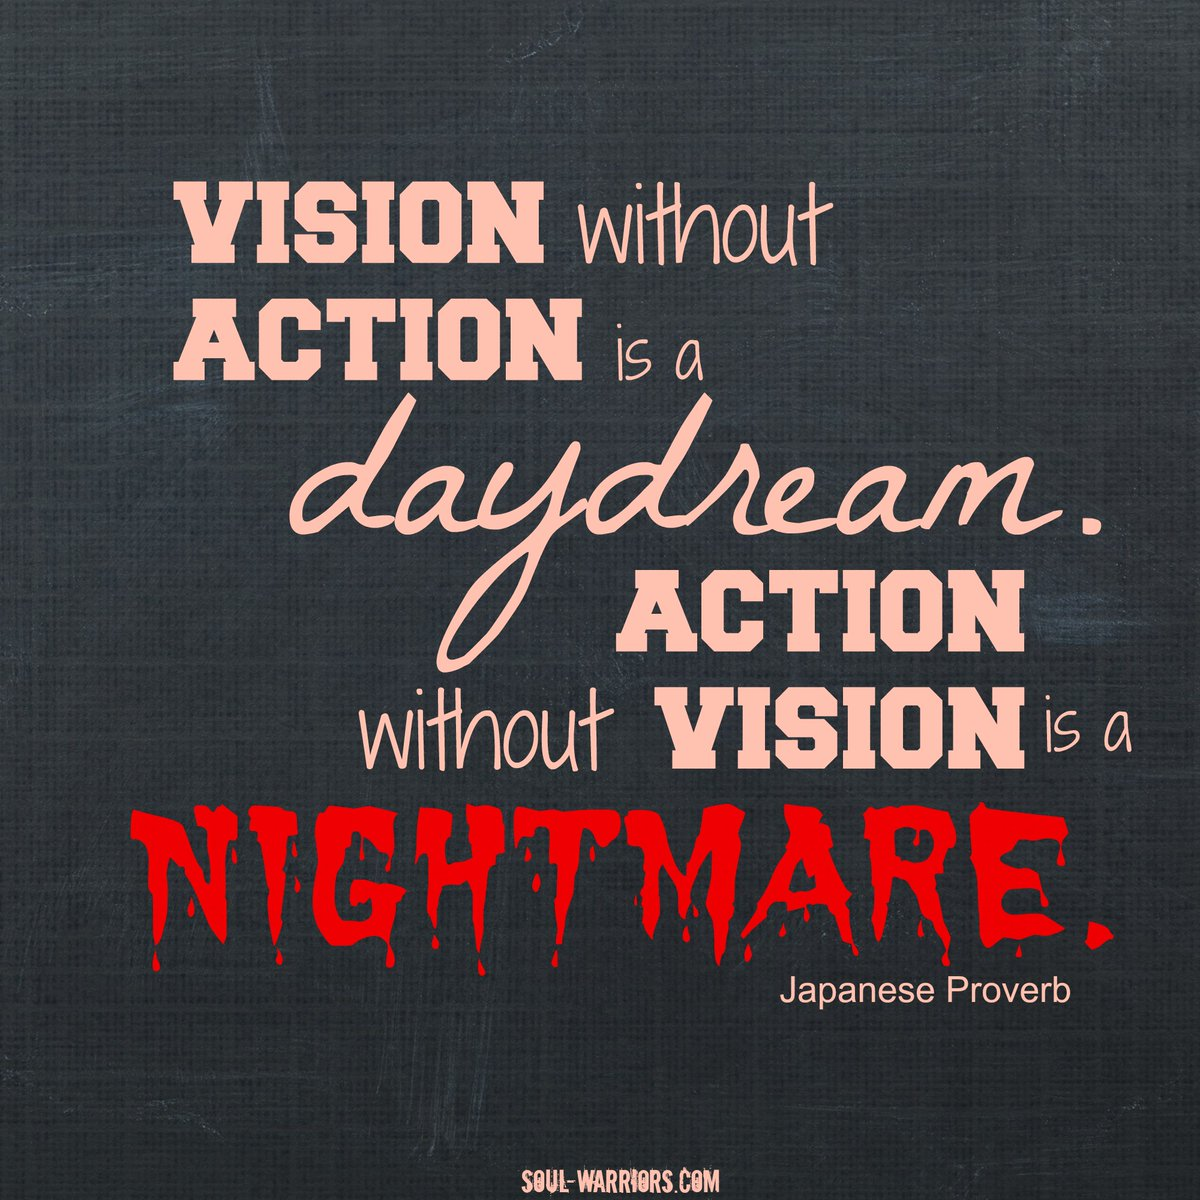 #Vision and #Action are both extremely important factors for growth and success. #biztipspic.twitter.com/UoUHhFVqPv